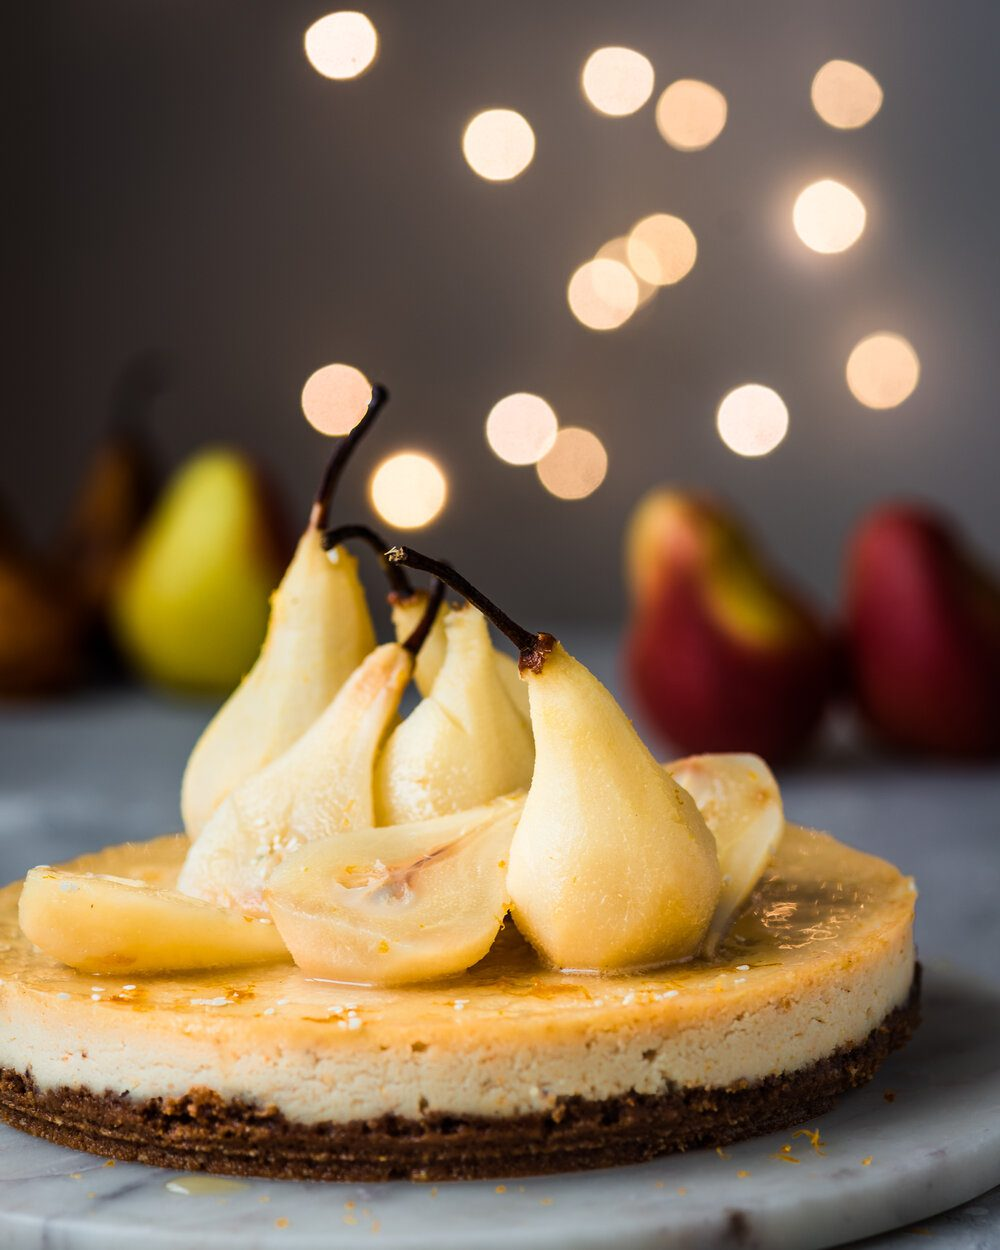 Ginger-Orange Baked Vegan Cheesecake with Poached Pears